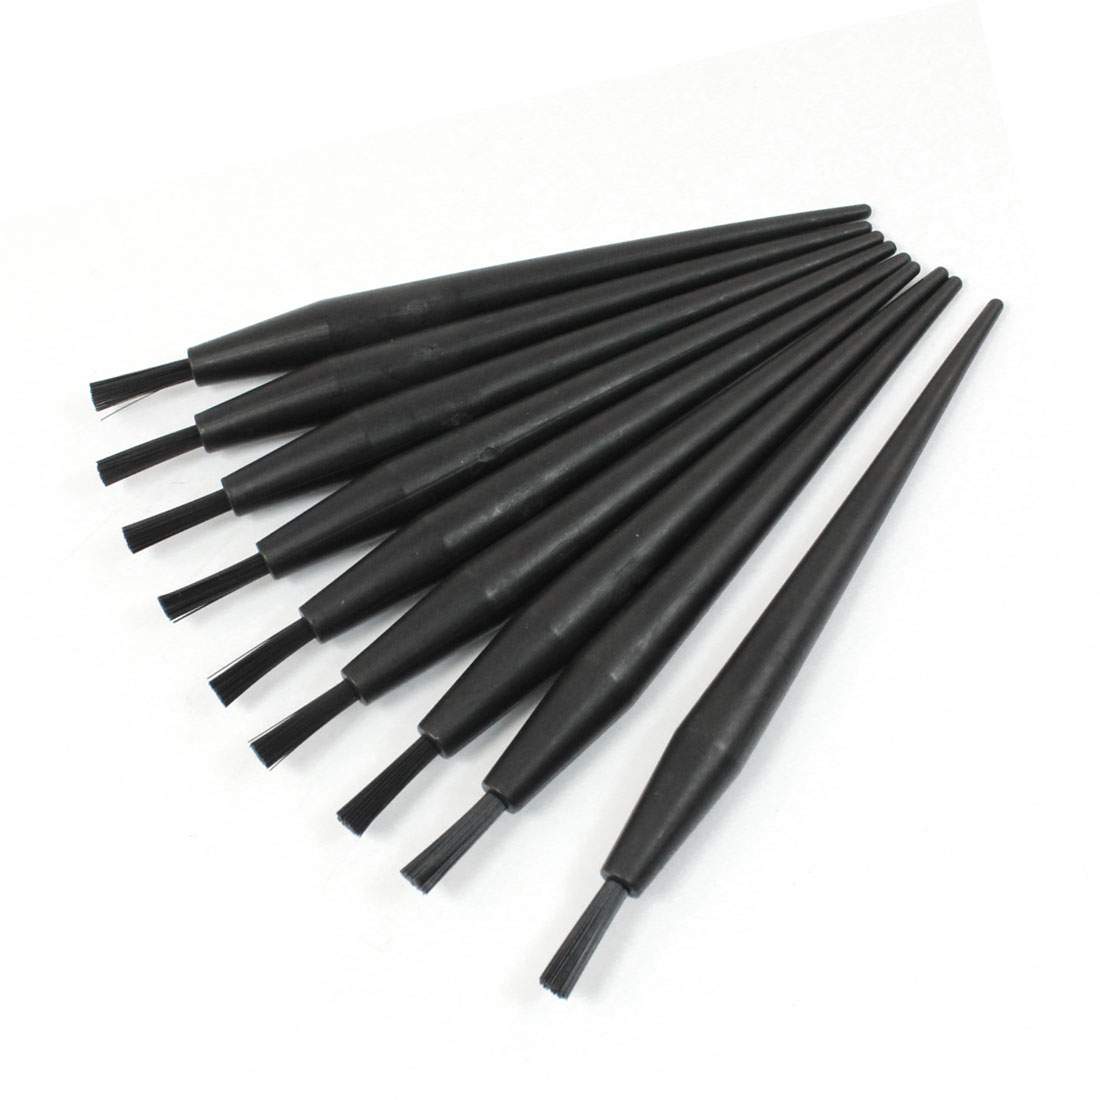 "10pcs 14m 5.5"" Long Plastic Handle Ground Conductive Brushes"